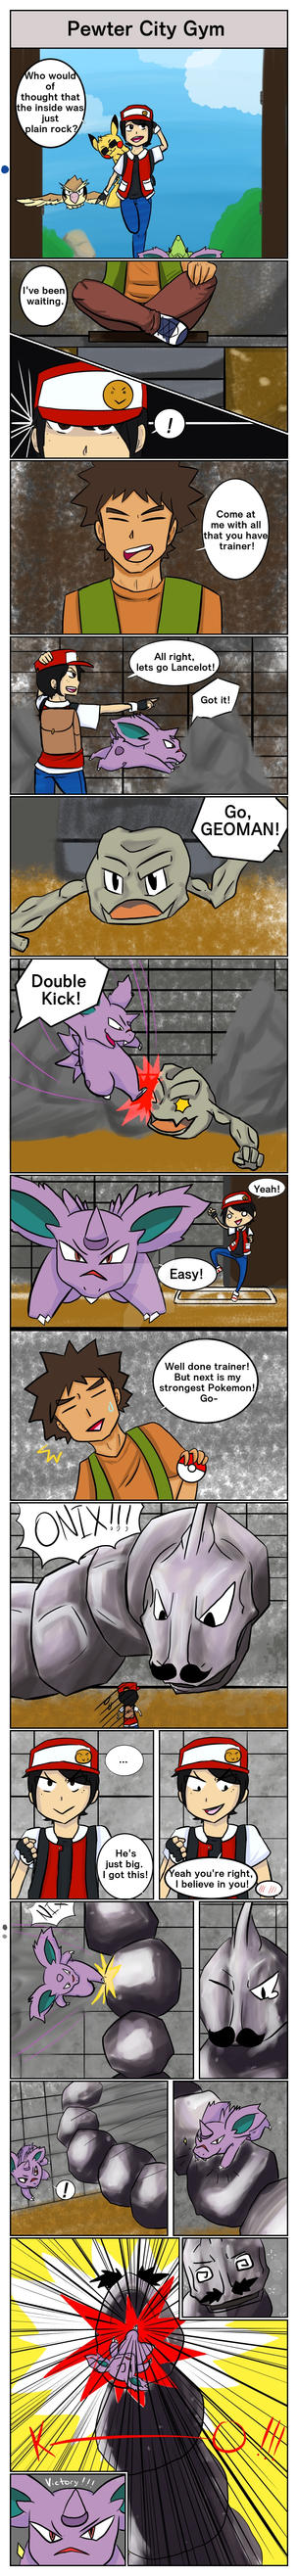 Pokemon Yellow: The first gym is rocky by Pokyeater